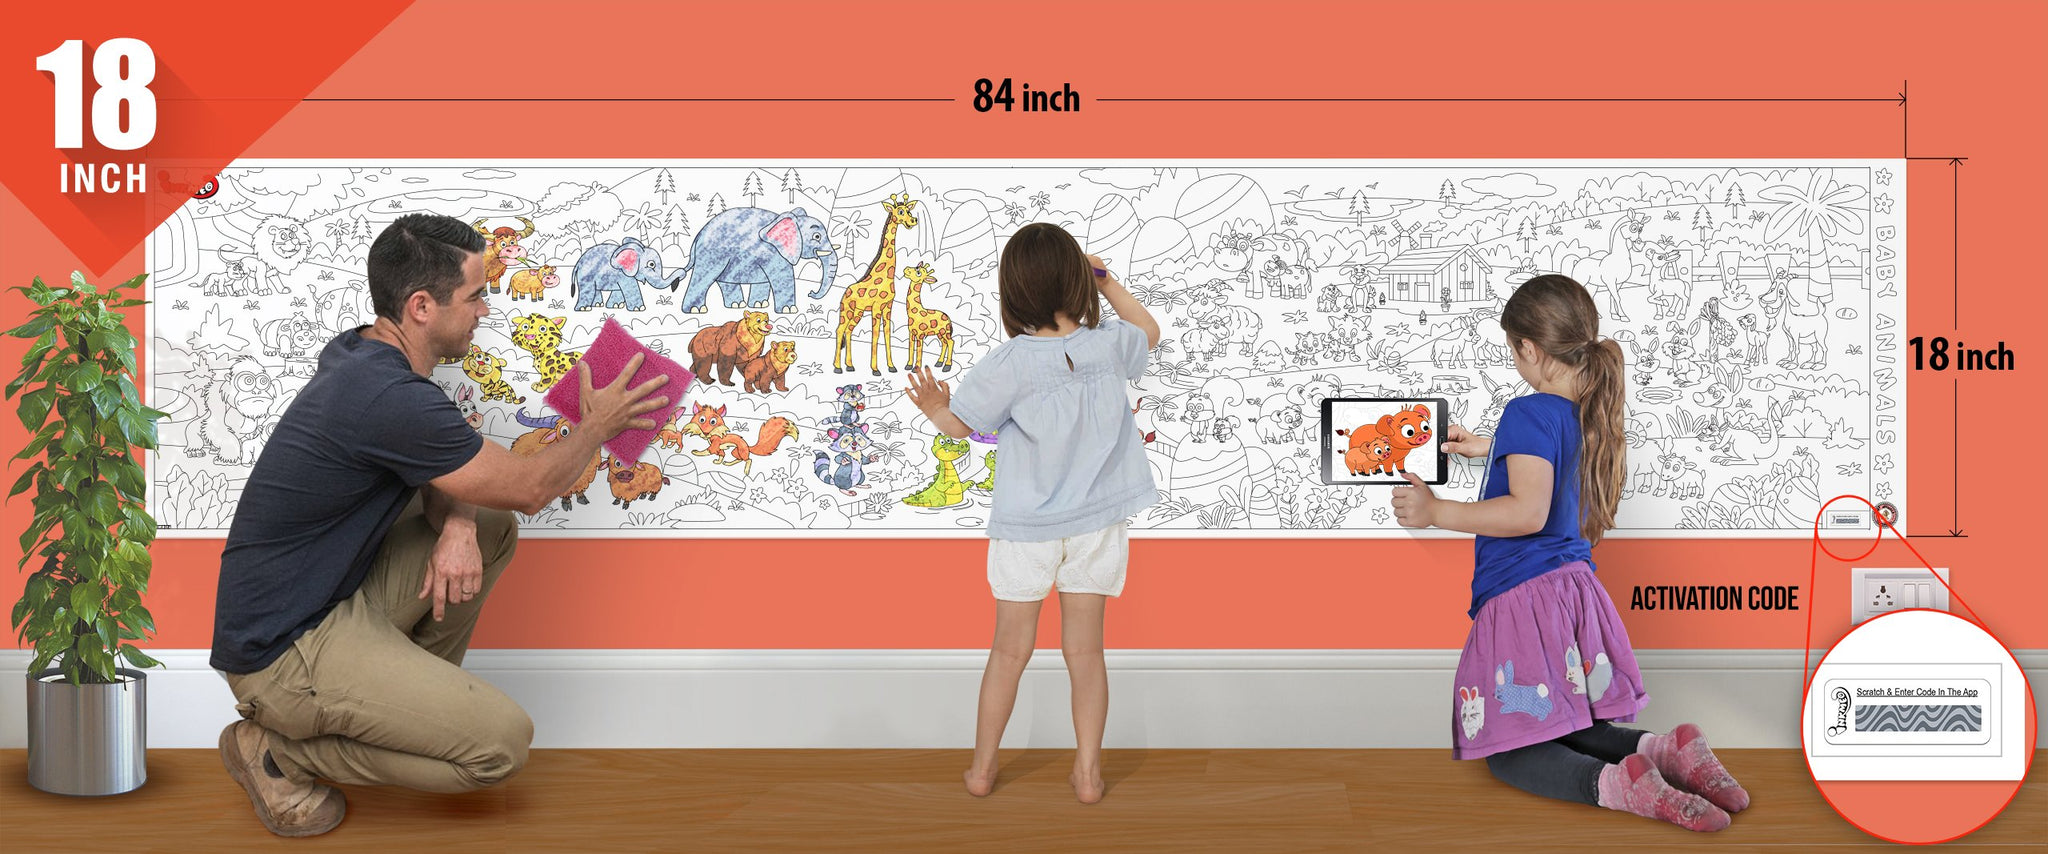 Baby Animals Colouring Roll (18 inch) - Inkmeo